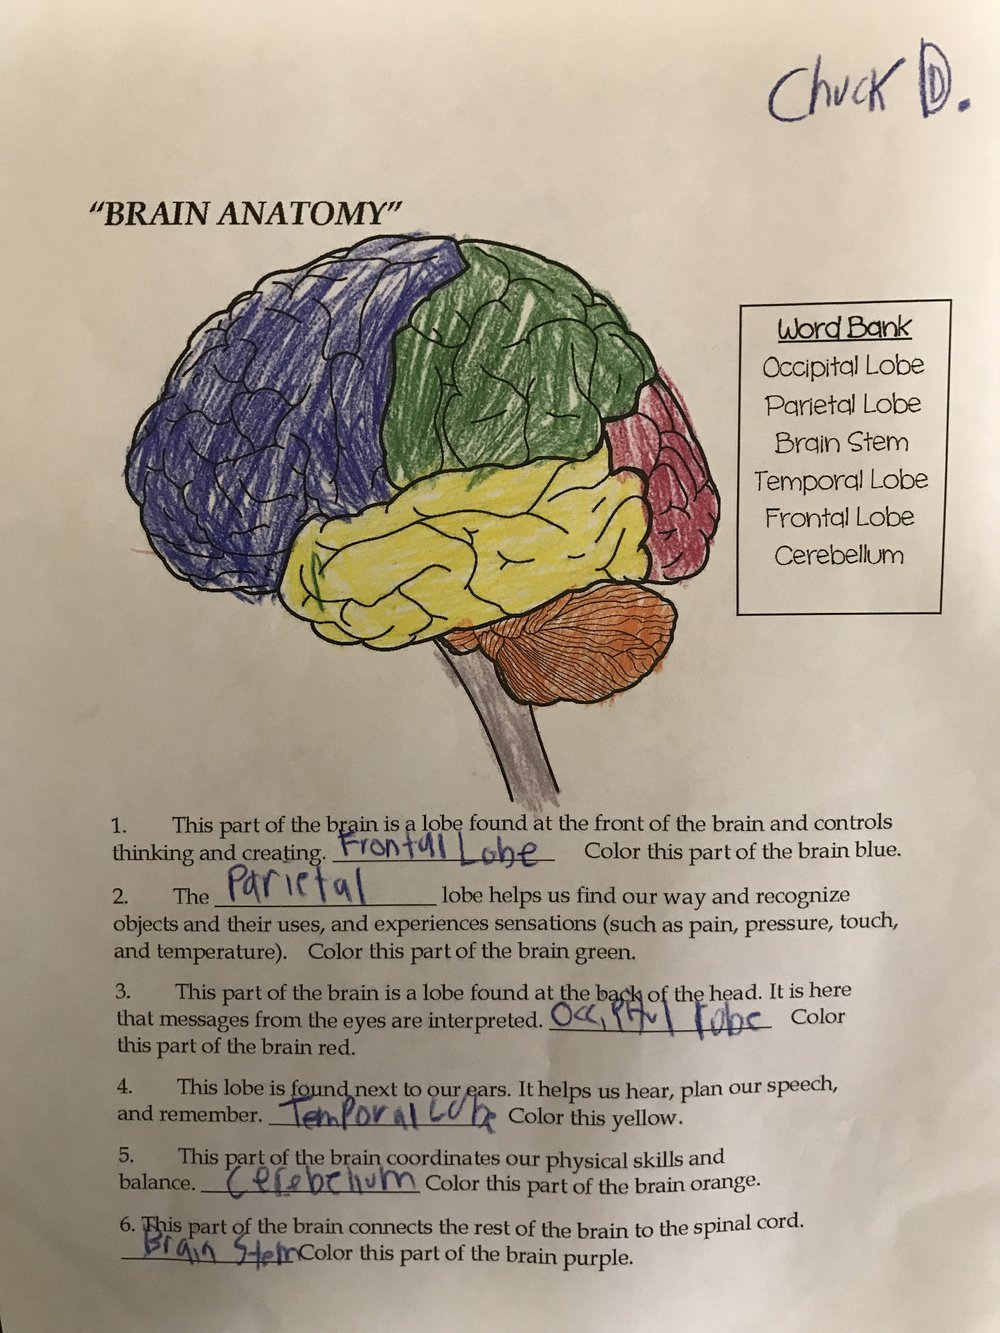 Charlie Meadows learns the parts of the brain and what their function is. Ancient Egyptians used to pull out the brains thinking it was useless tissue and toss throw it away! wowza!